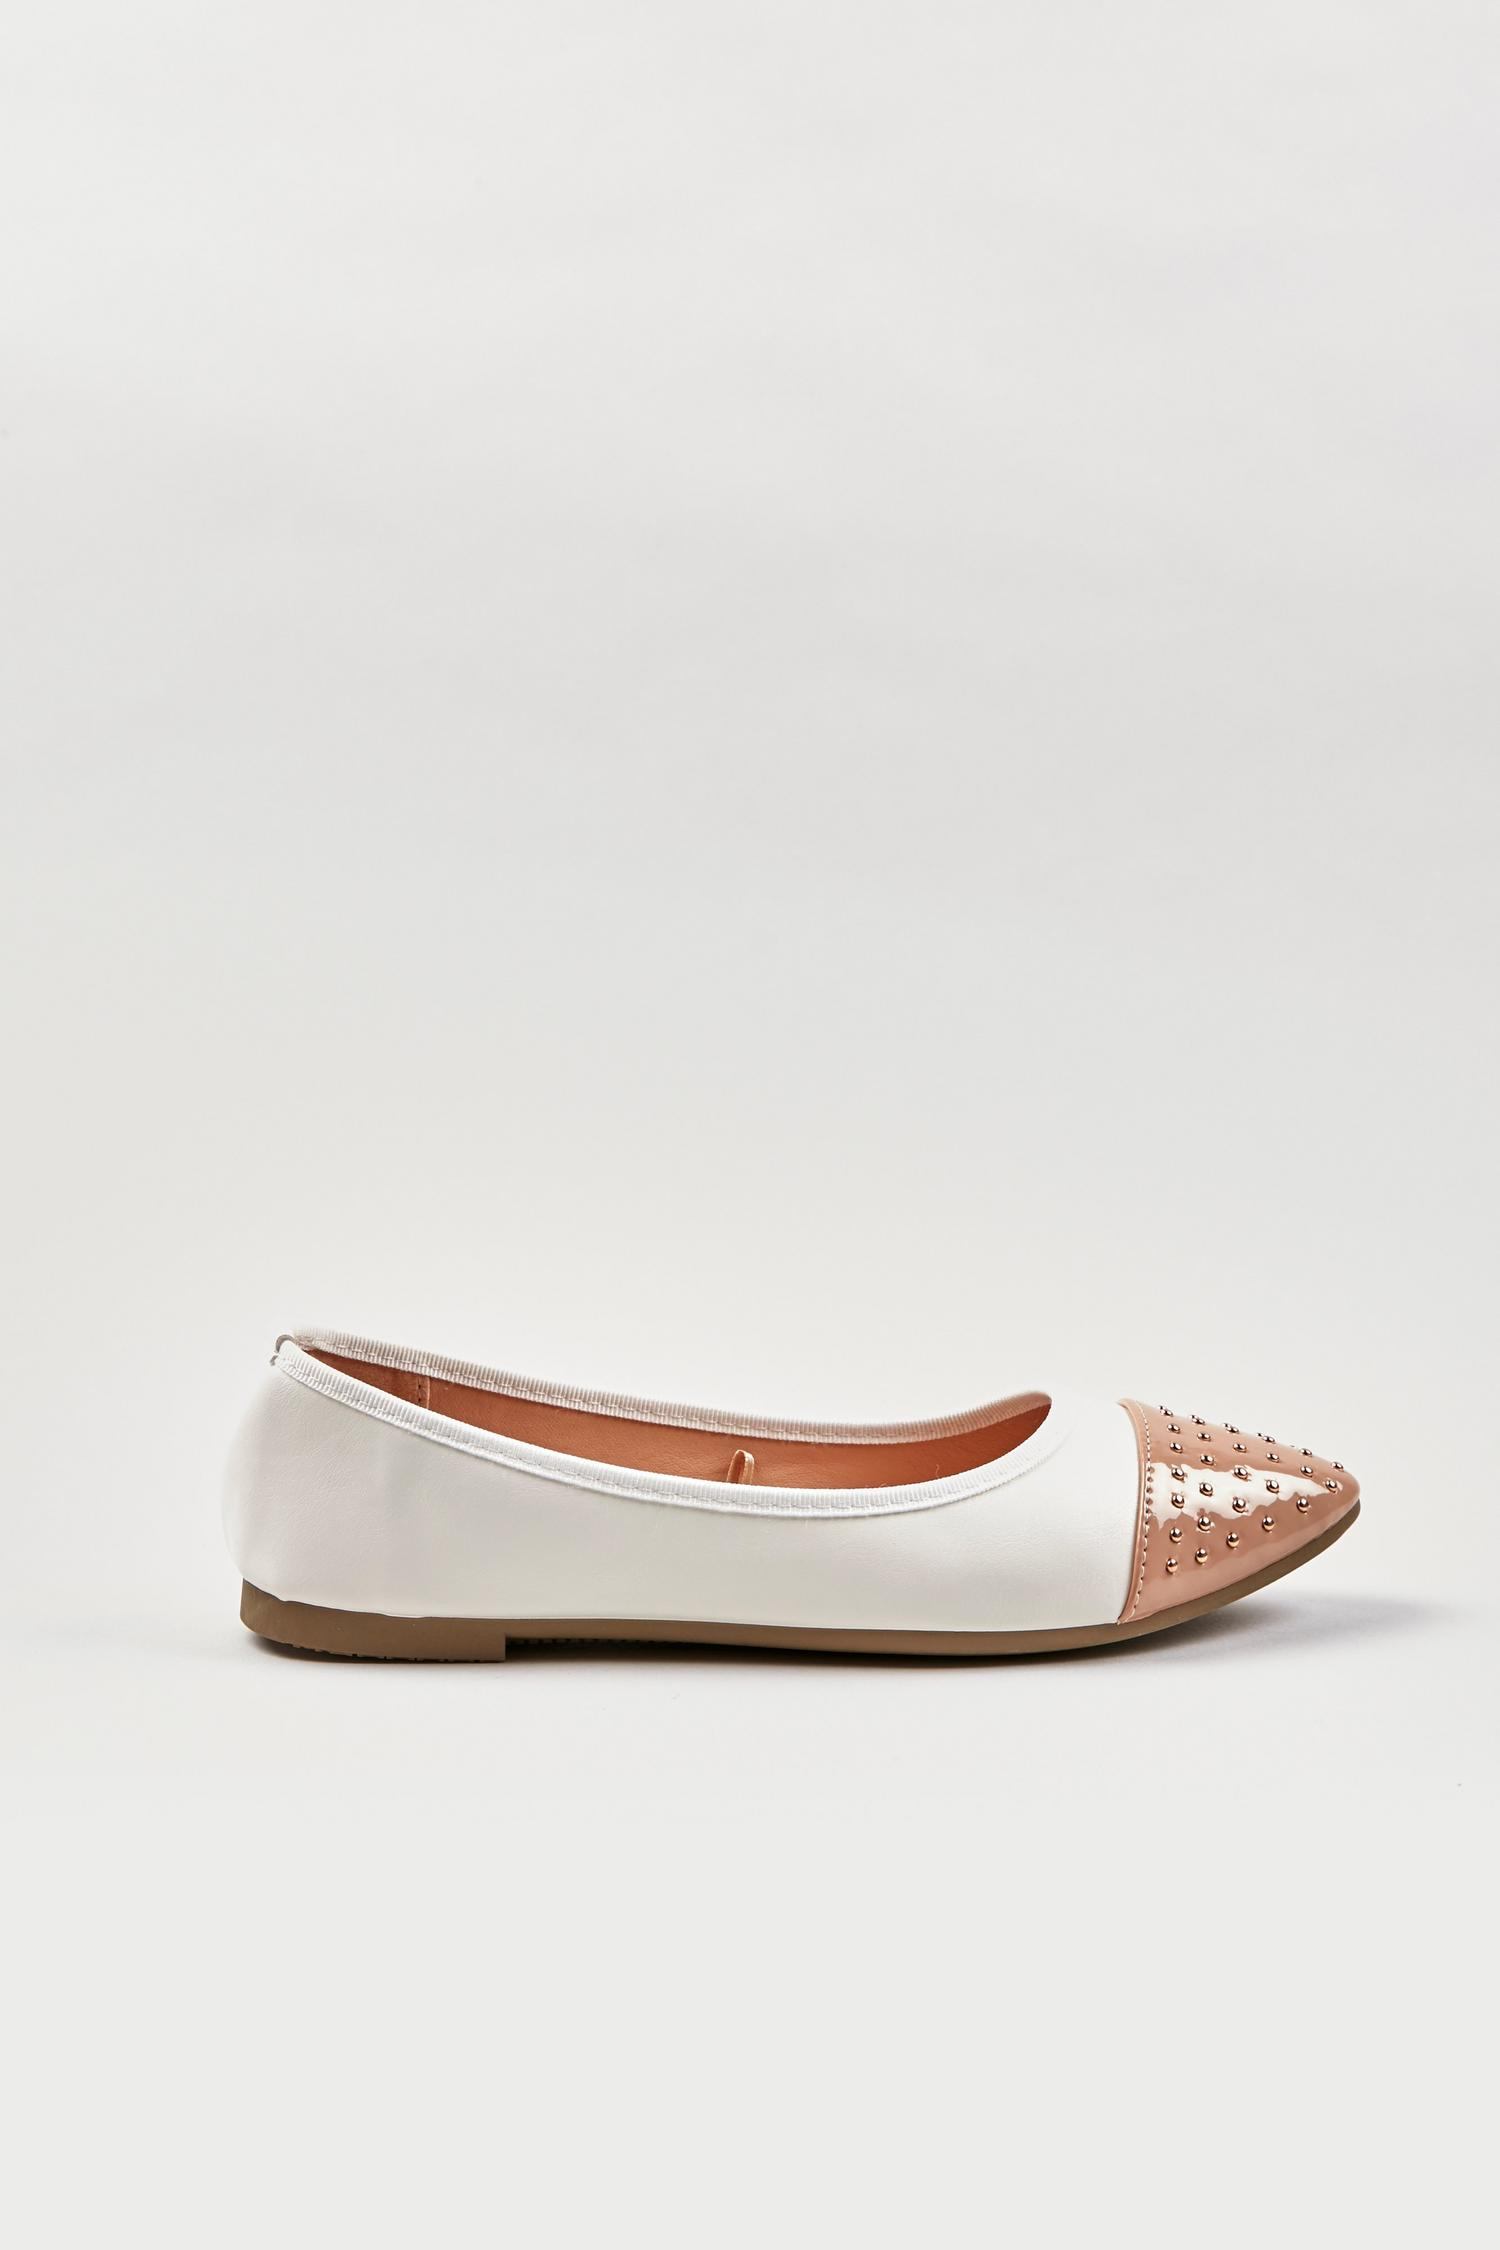 123 Cream Studded Pointed Ballet Pump image number 3